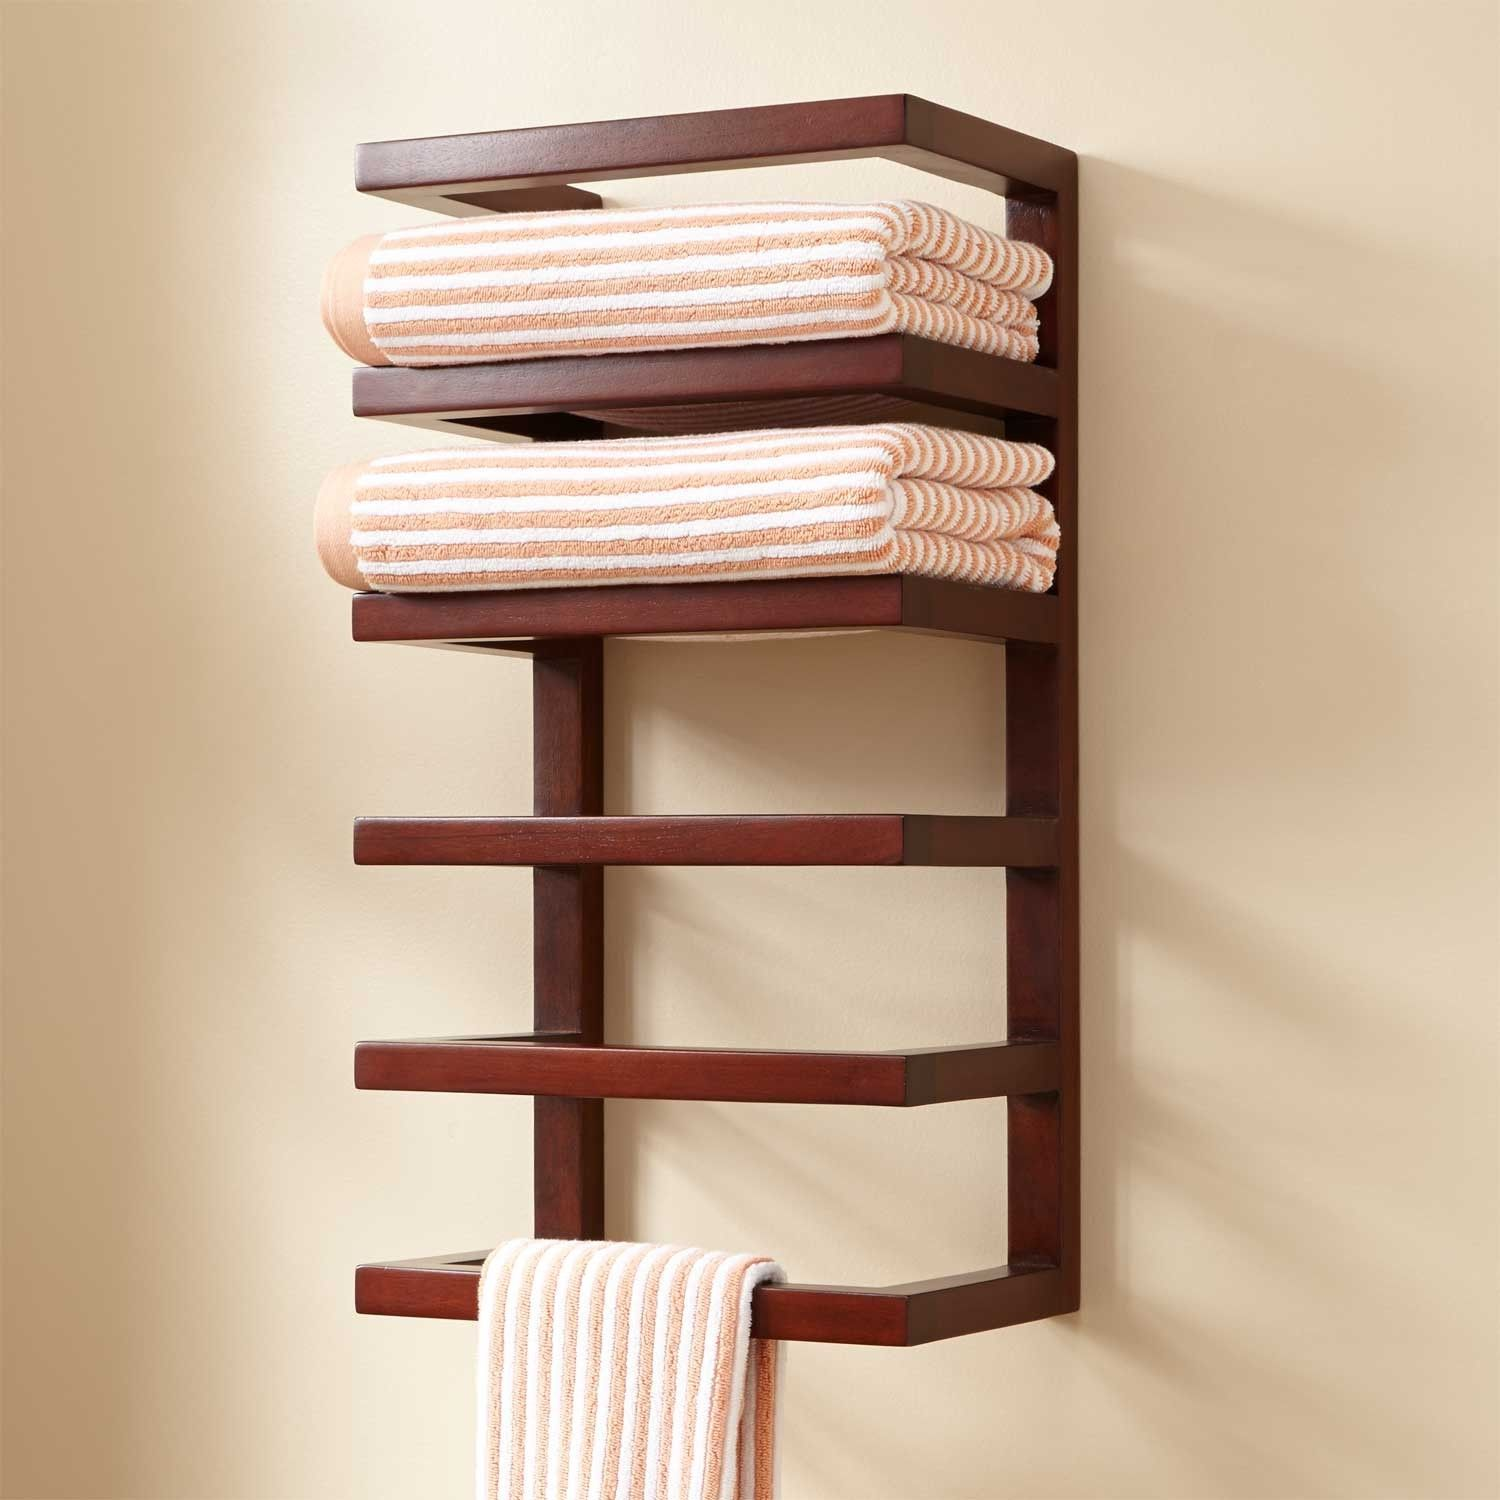 Design Towel Racks mahogany hanging towel rack holders bathroom accessories bathroom